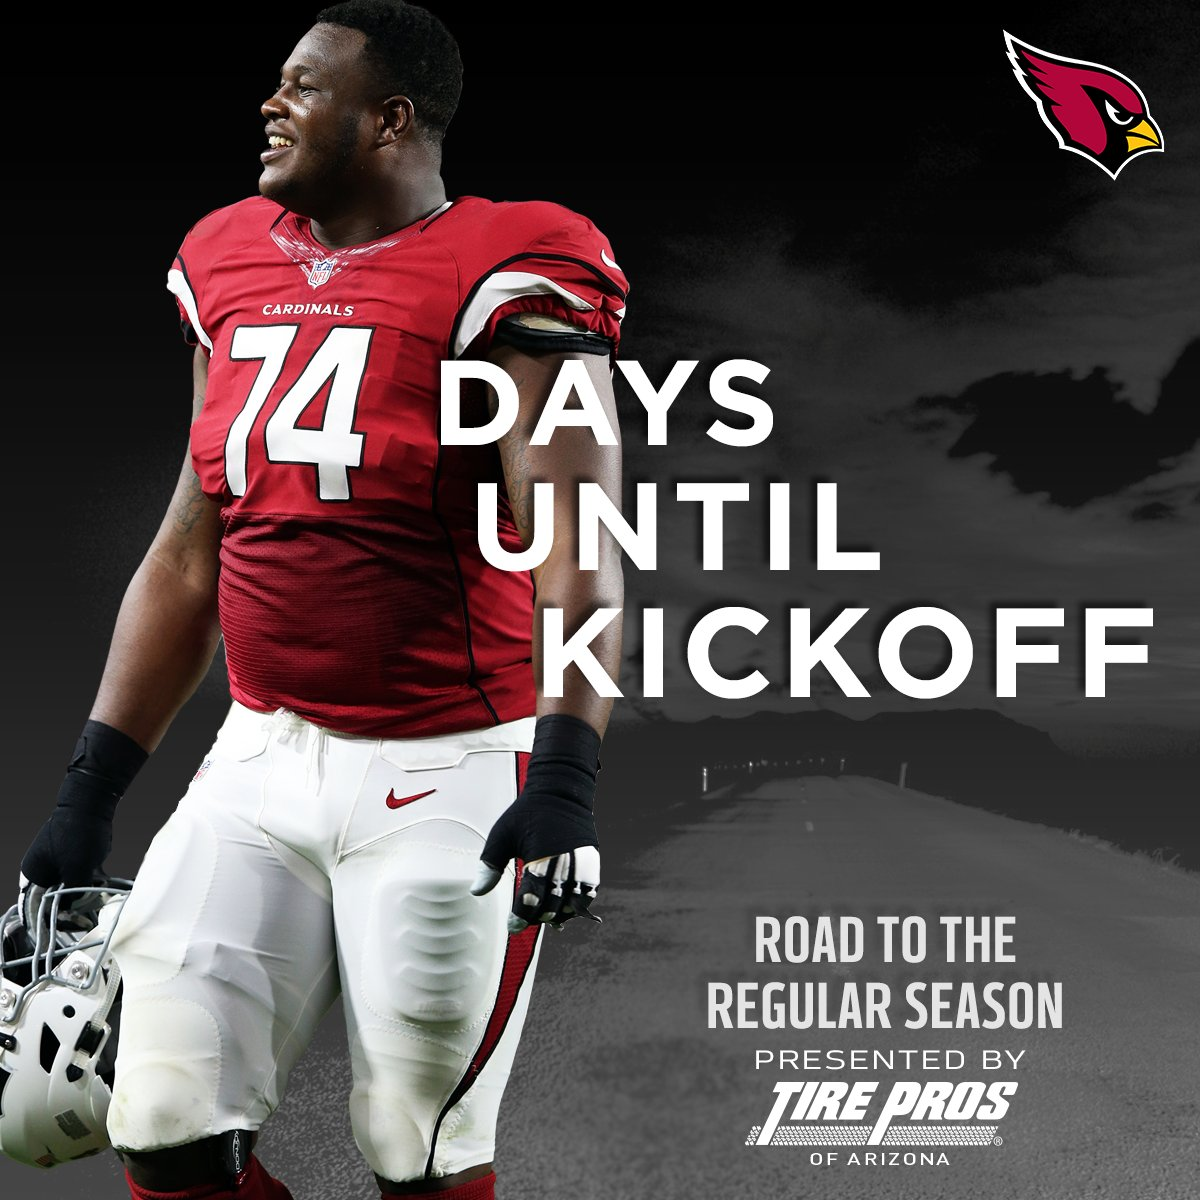 7⃣4⃣ DAYS! https://t.co/A0ngzwGMhv